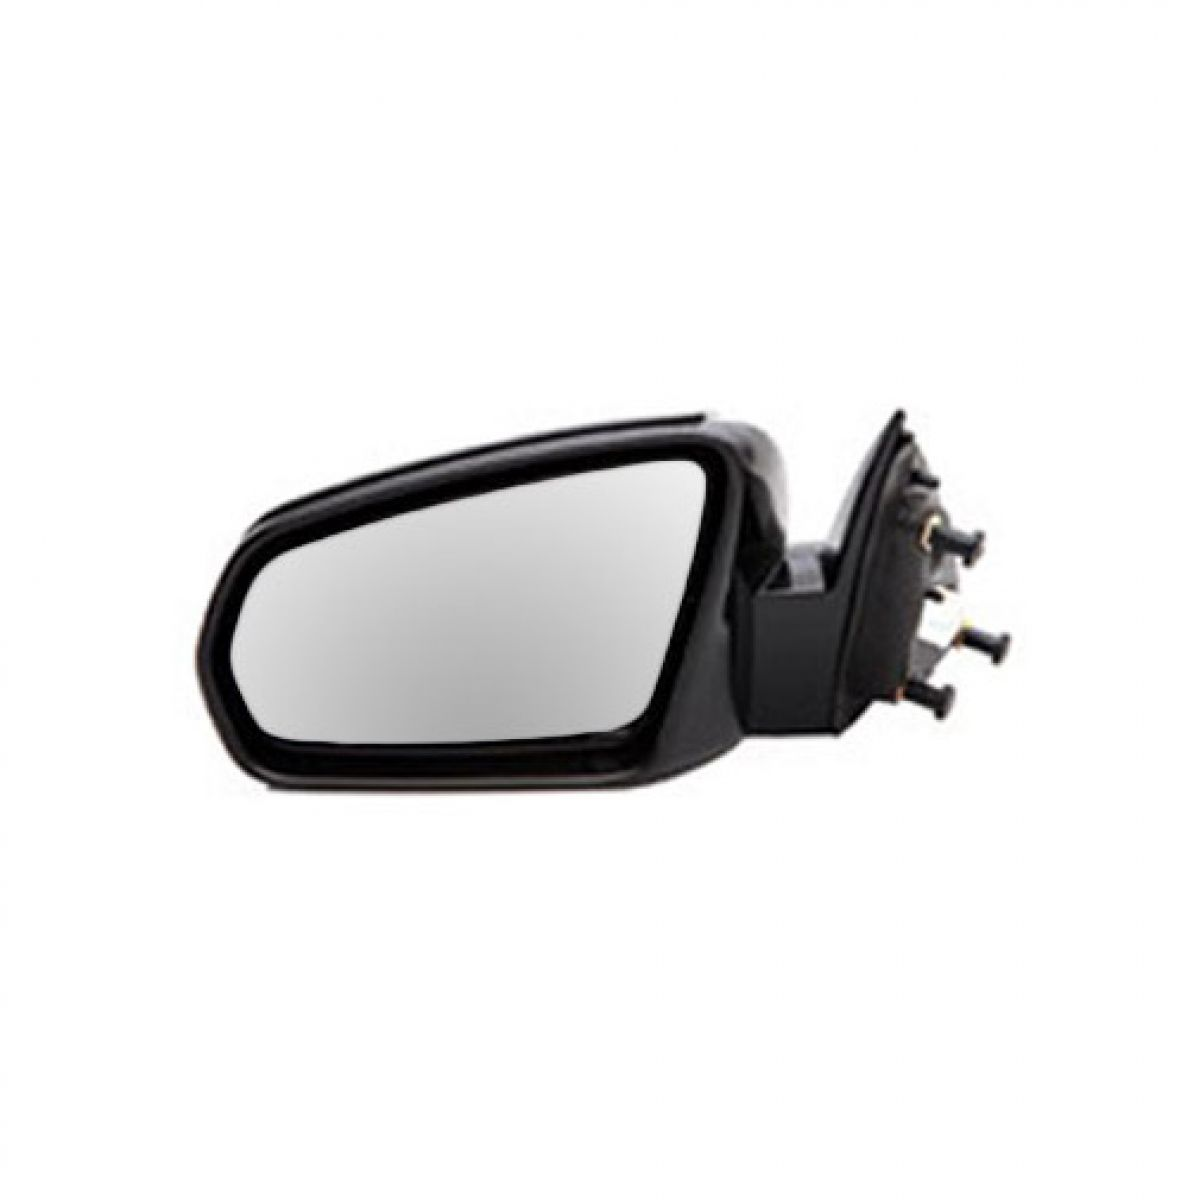 MOTOOS Textured Black Manual Door Mirror Replacement Left Driver Side Mirror Fit for 07-10 Jeep Wrangler